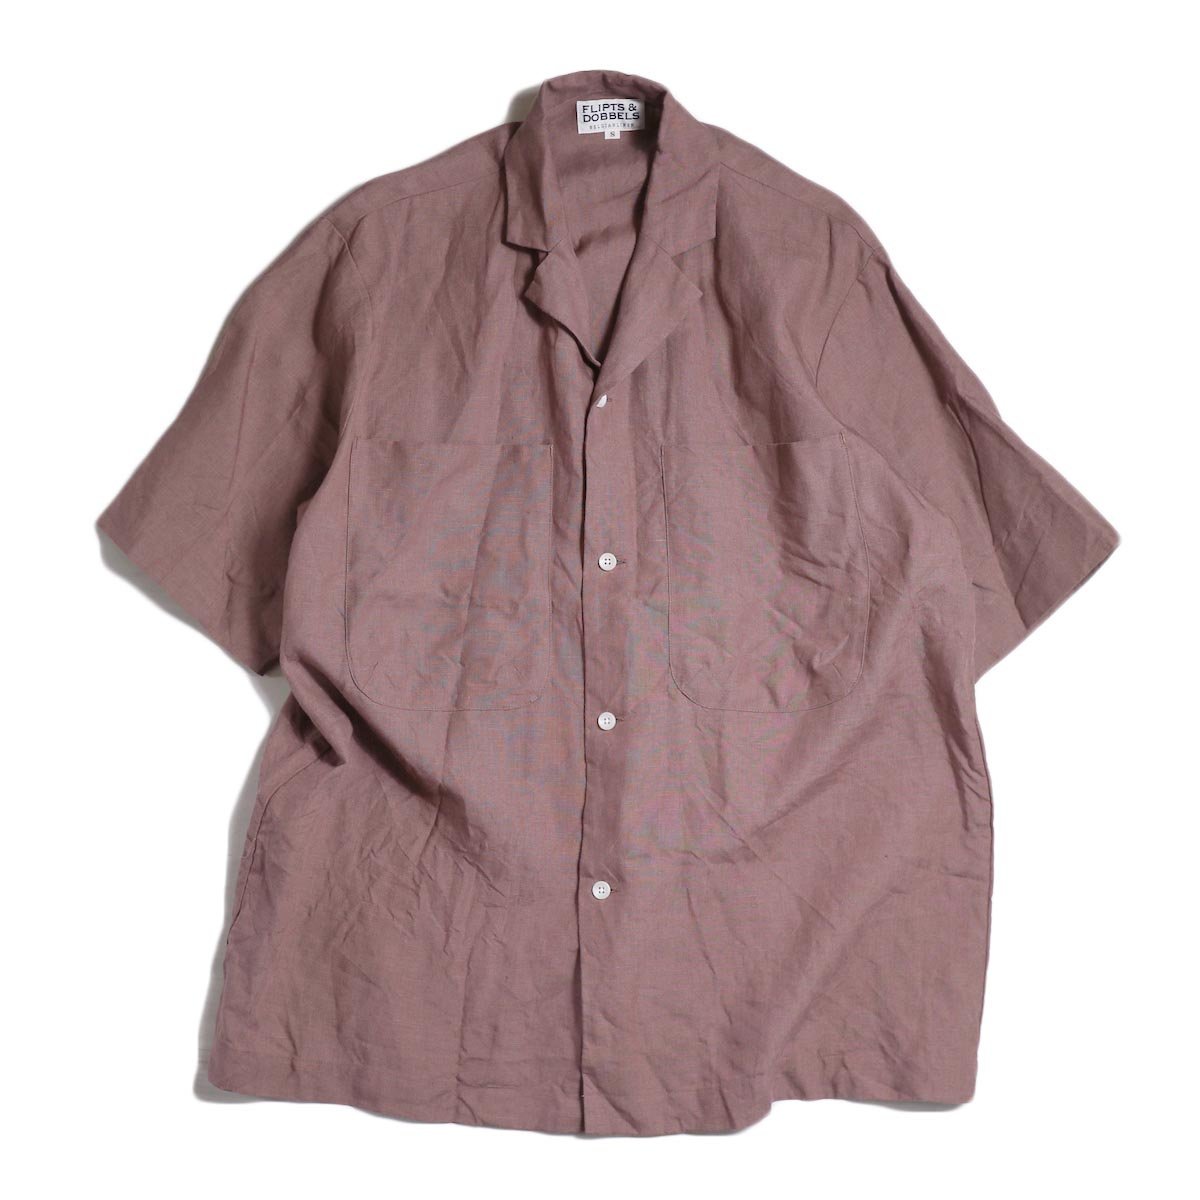 FLIPTS & DOBBELS /  Open S/S Shirts -Old Rose